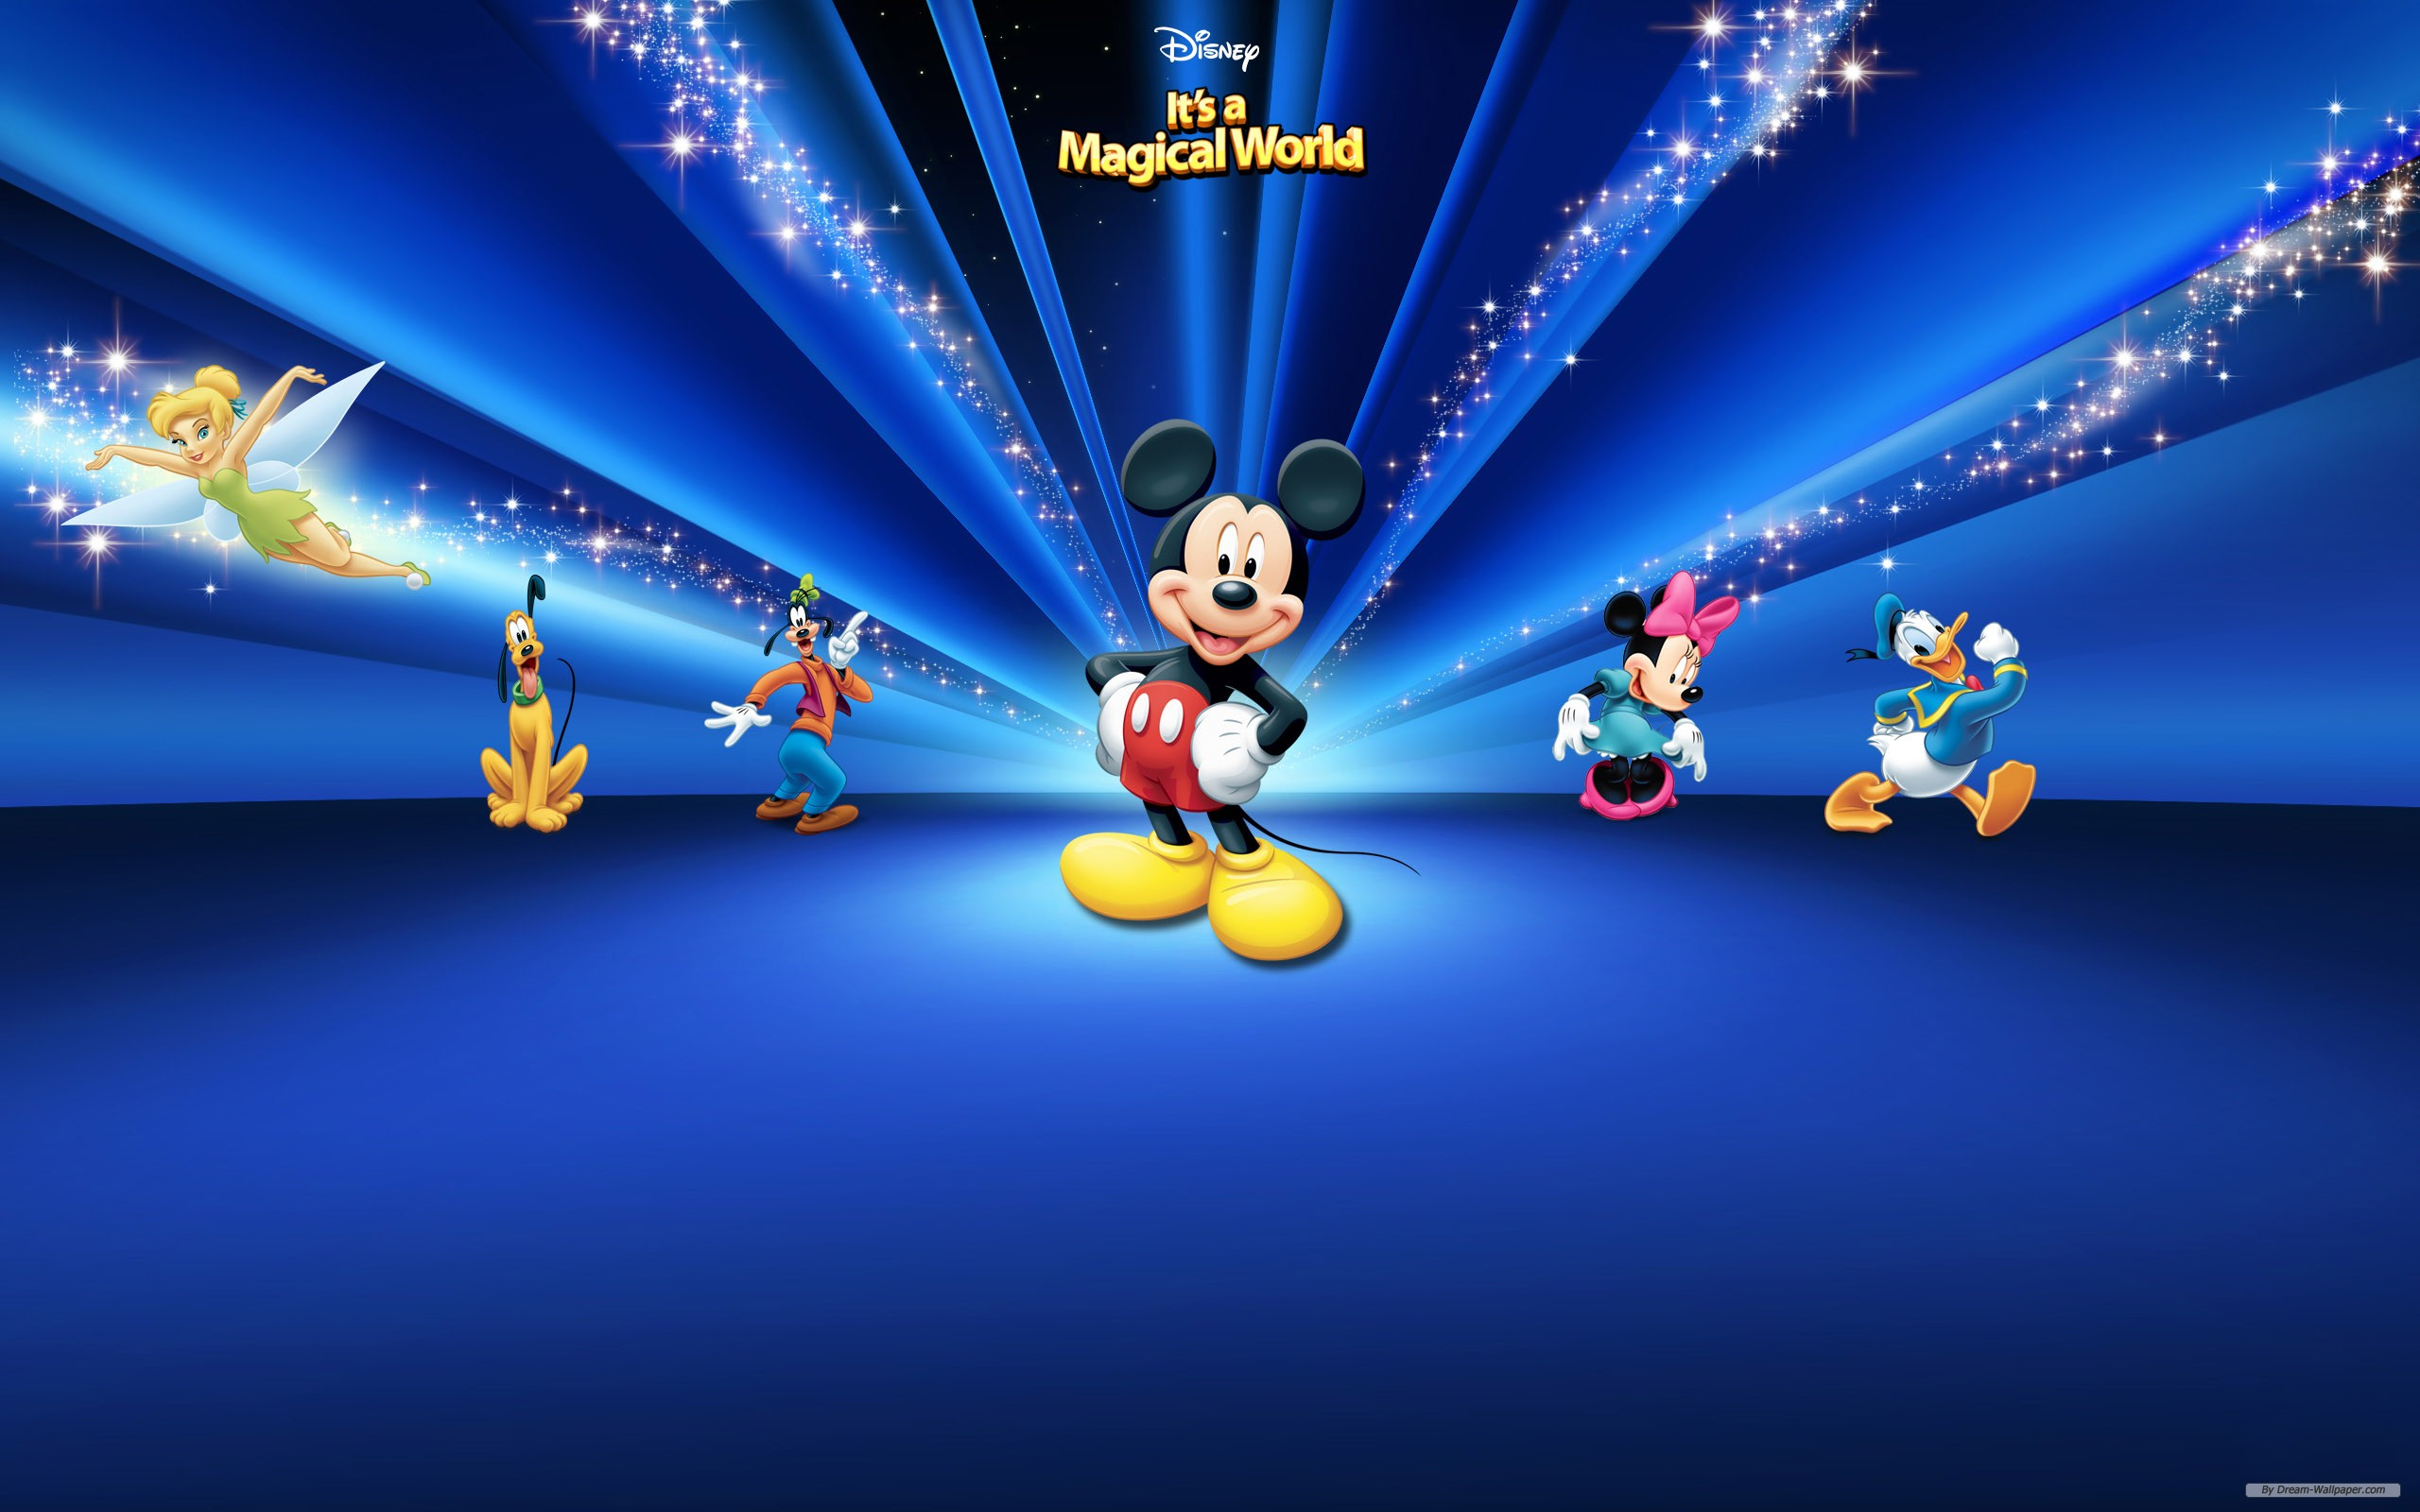 wwwdream wallpapercomcartoon wallpaperdisney theme 1 wallpaper 2560x1600